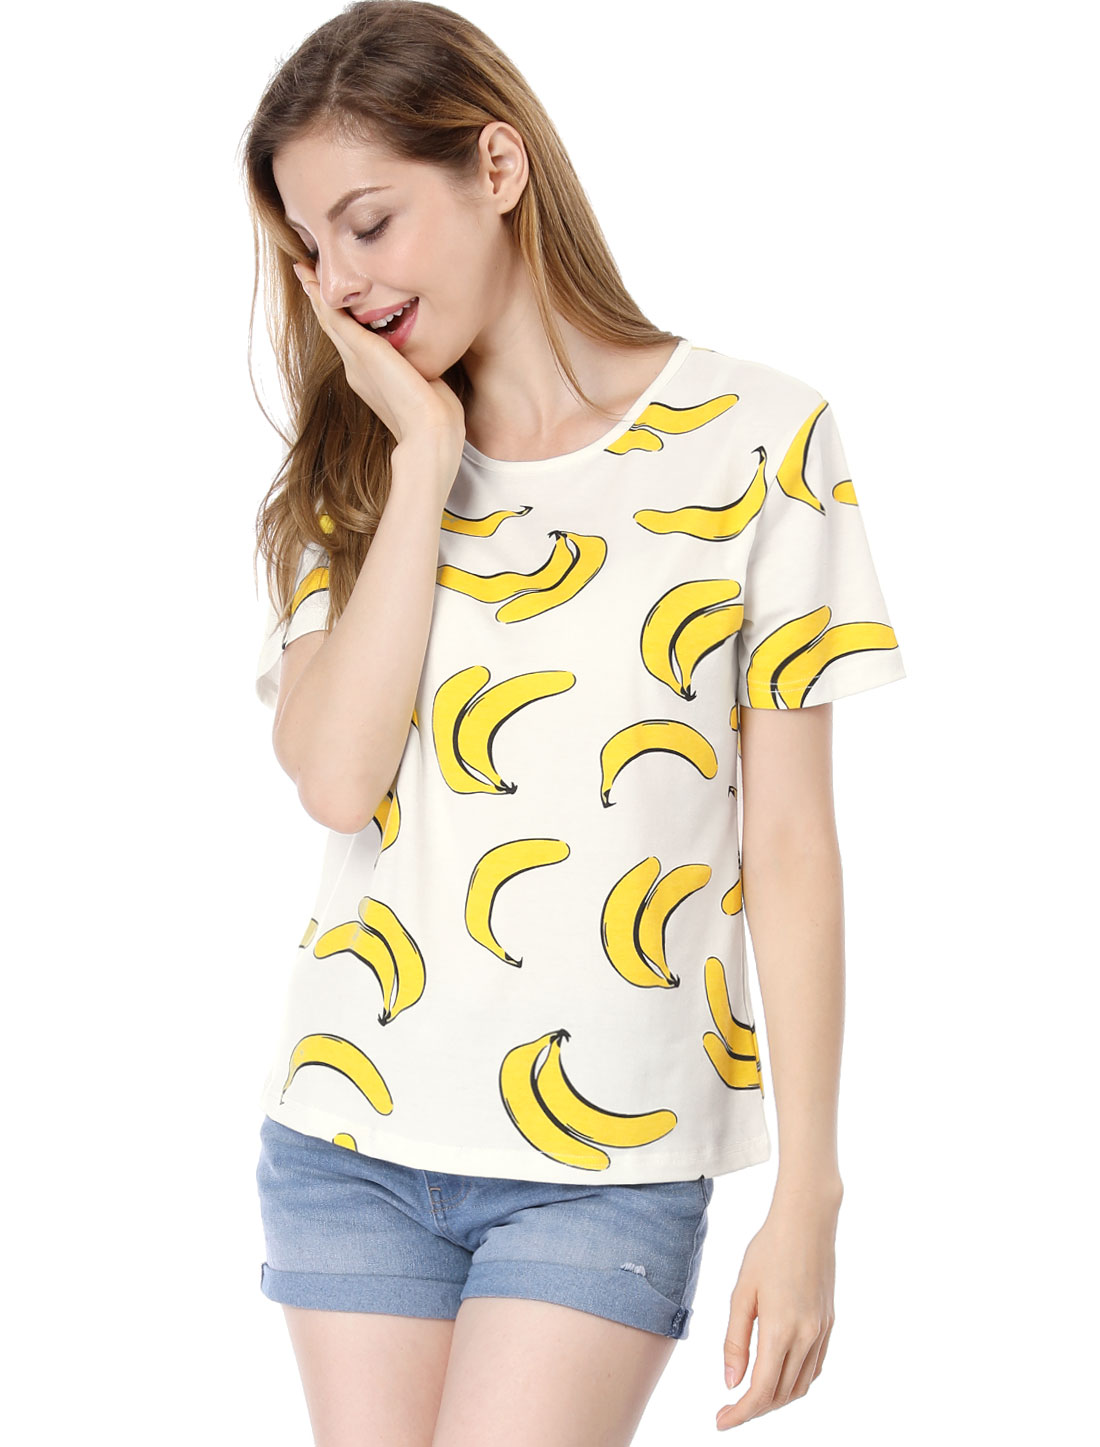 Women Short-Sleeve Banana Printing Casual T-Shirt White XS